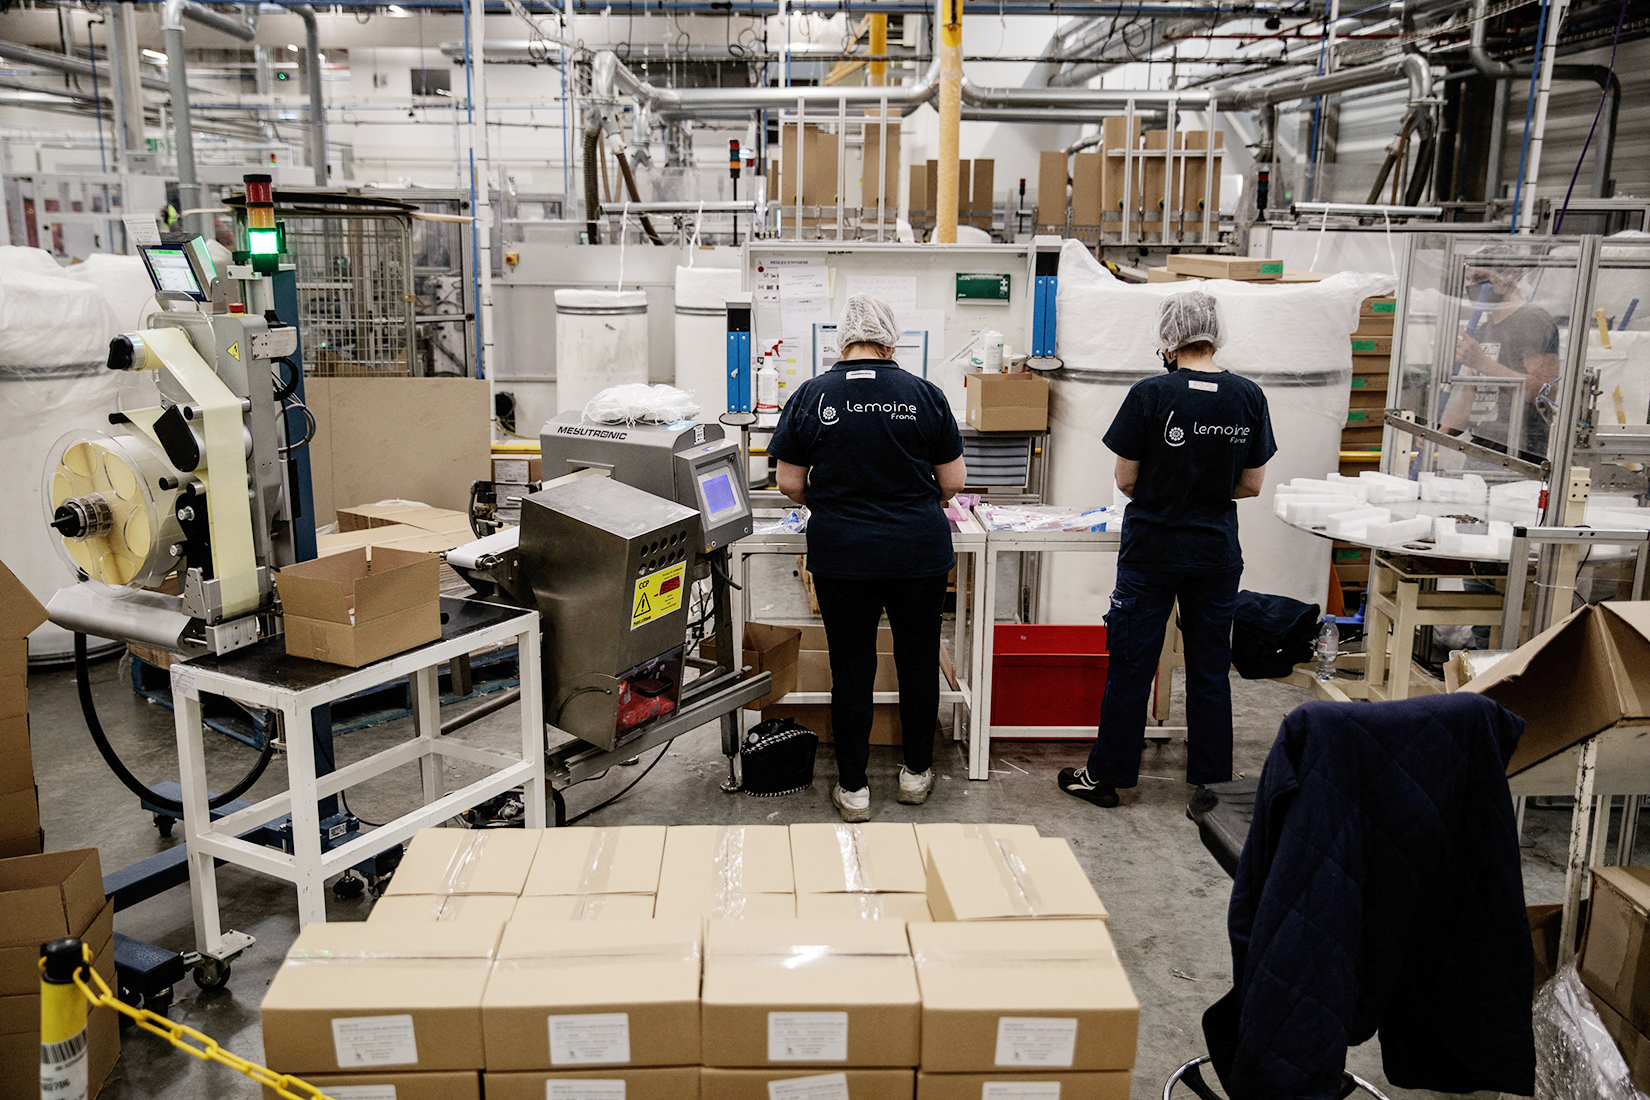 Employees of the Lemoine Group, usually producing cotton swabs, are at work on production lines rearranged to produce the nasopharyngeal swabs necessary for virological screening tests of the Covid-19, in Caligny, Normandy, on April 29, 2020, on the 44th day of a lockdown in France aimed at curbing the spread of the COVID-19 disease, caused by the novel coronavirus. (Photo by Sameer Al-DOUMY / AFP)